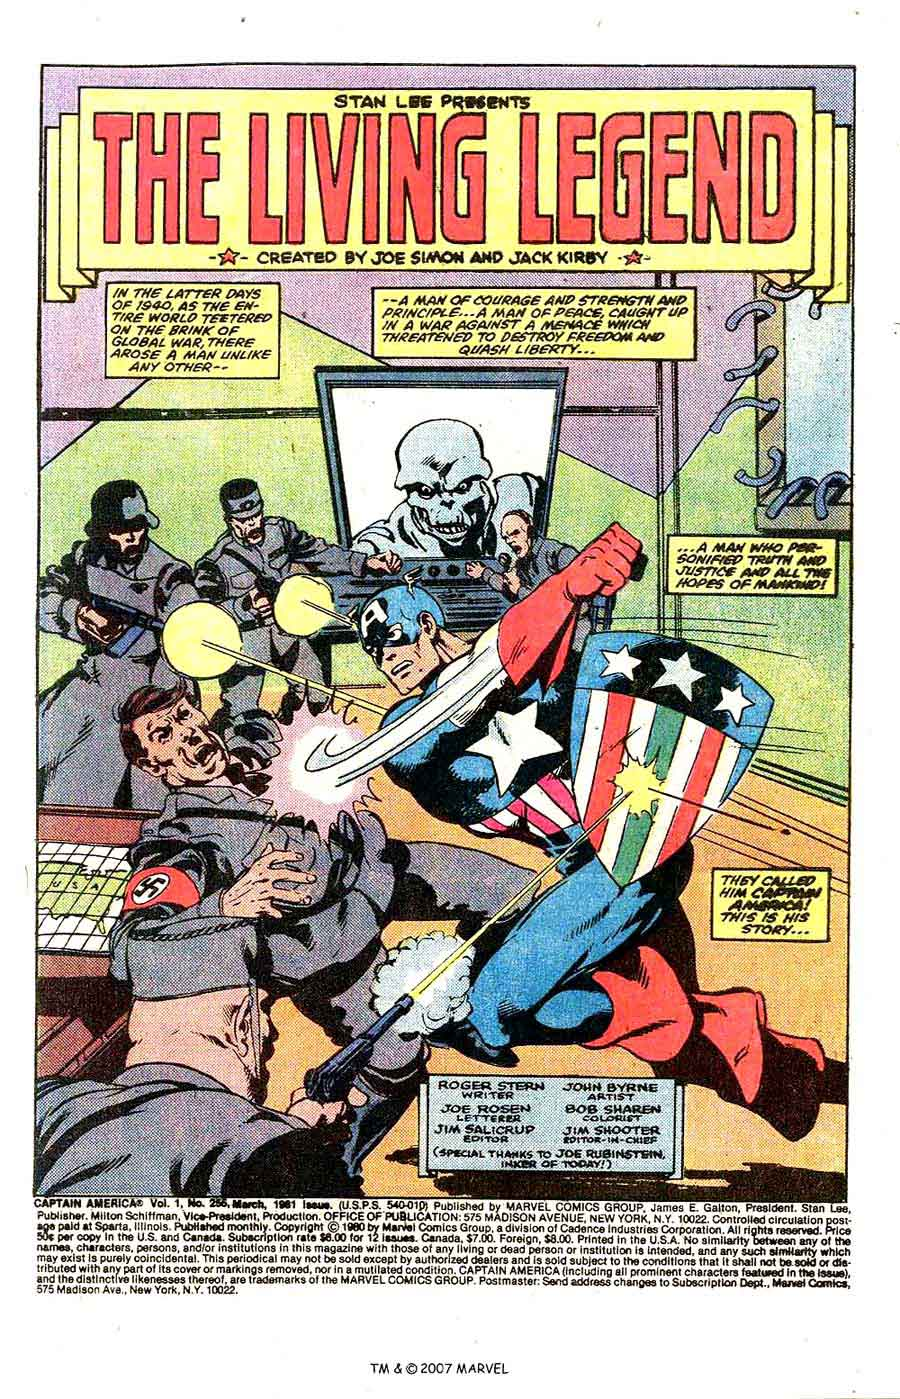 Captain America #255 marvel 1980s bronze age comic book page art by John Byrne